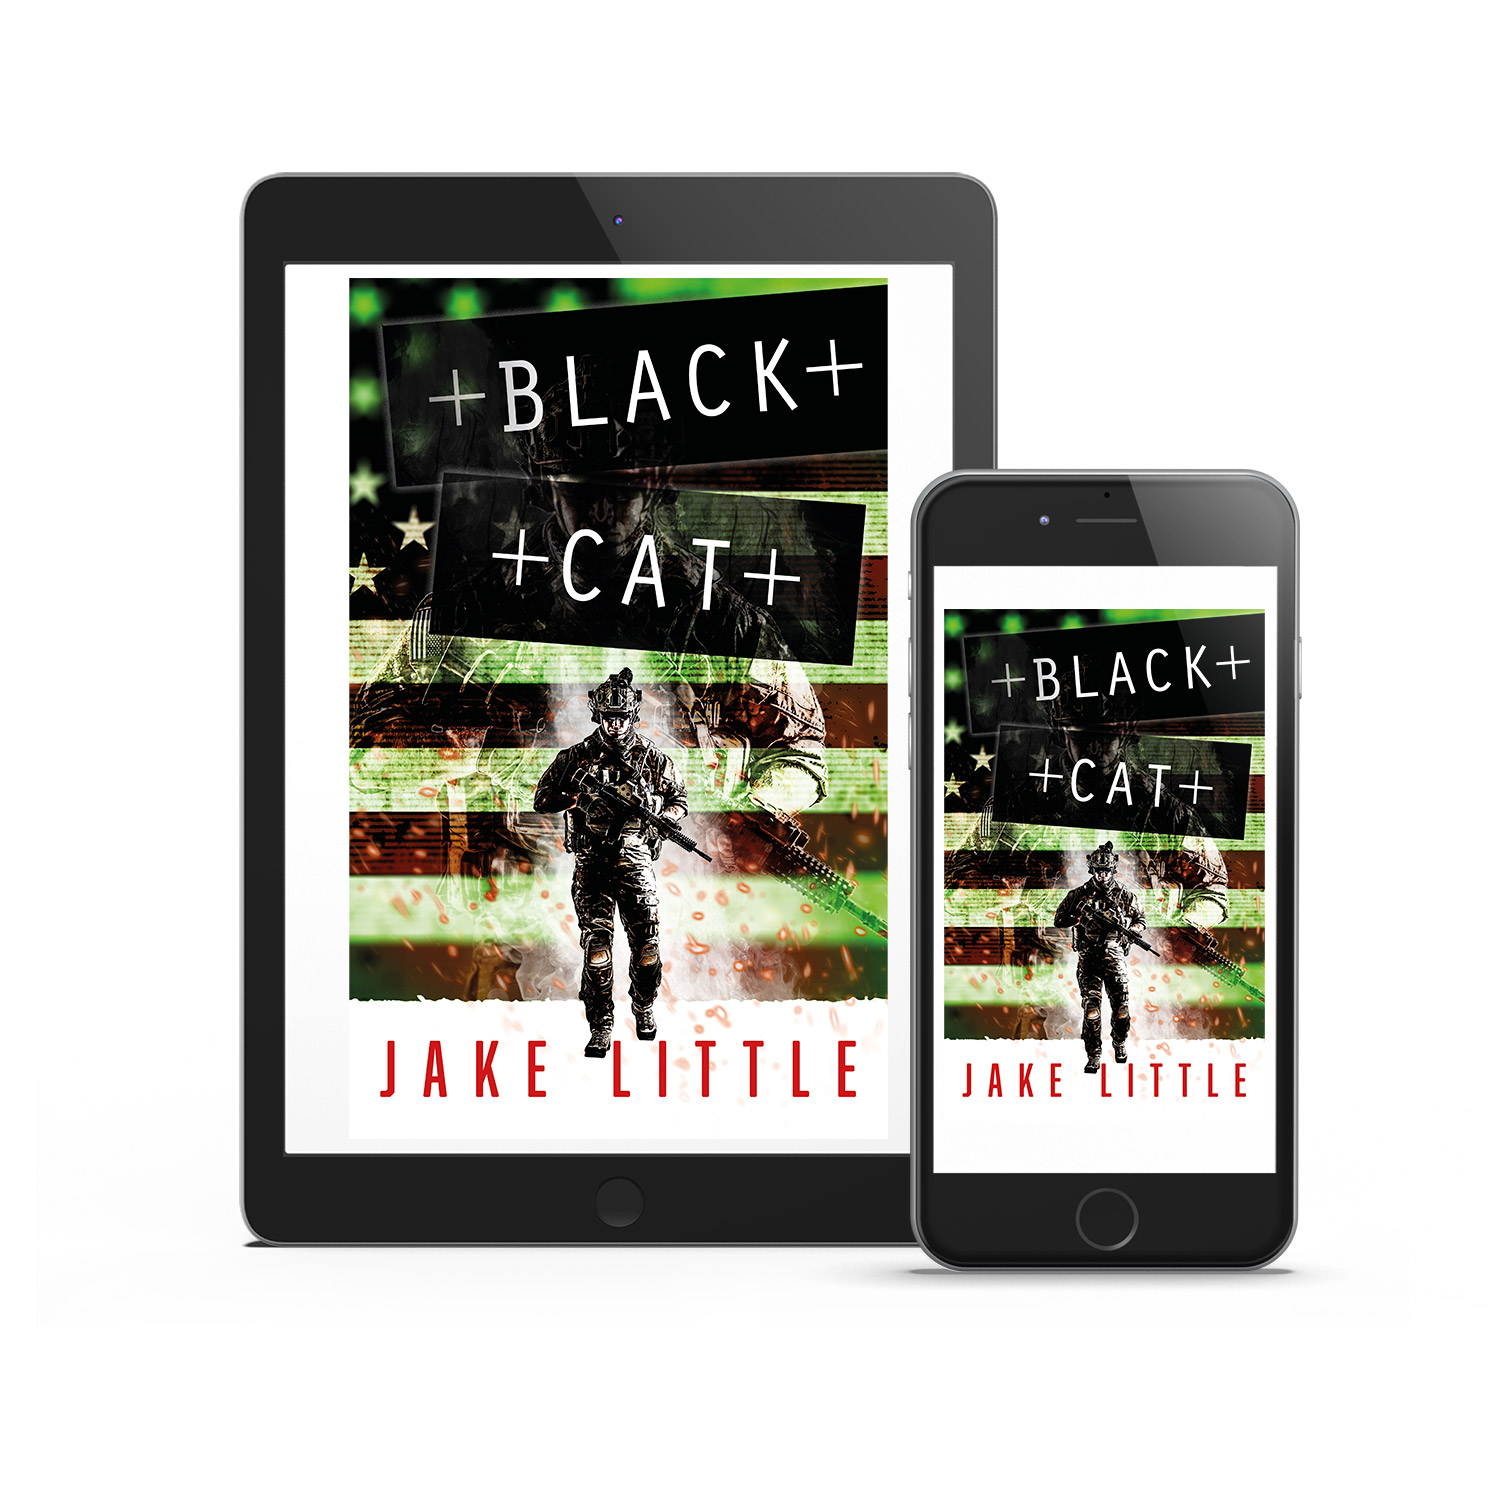 'Black Cat' is a hard-edged, covert ops thriller. The author is Jake Little. The cover design and interior manuscript formatting are by Mark Thomas. Learn what Mark could do for your book by visiting coverness.com.